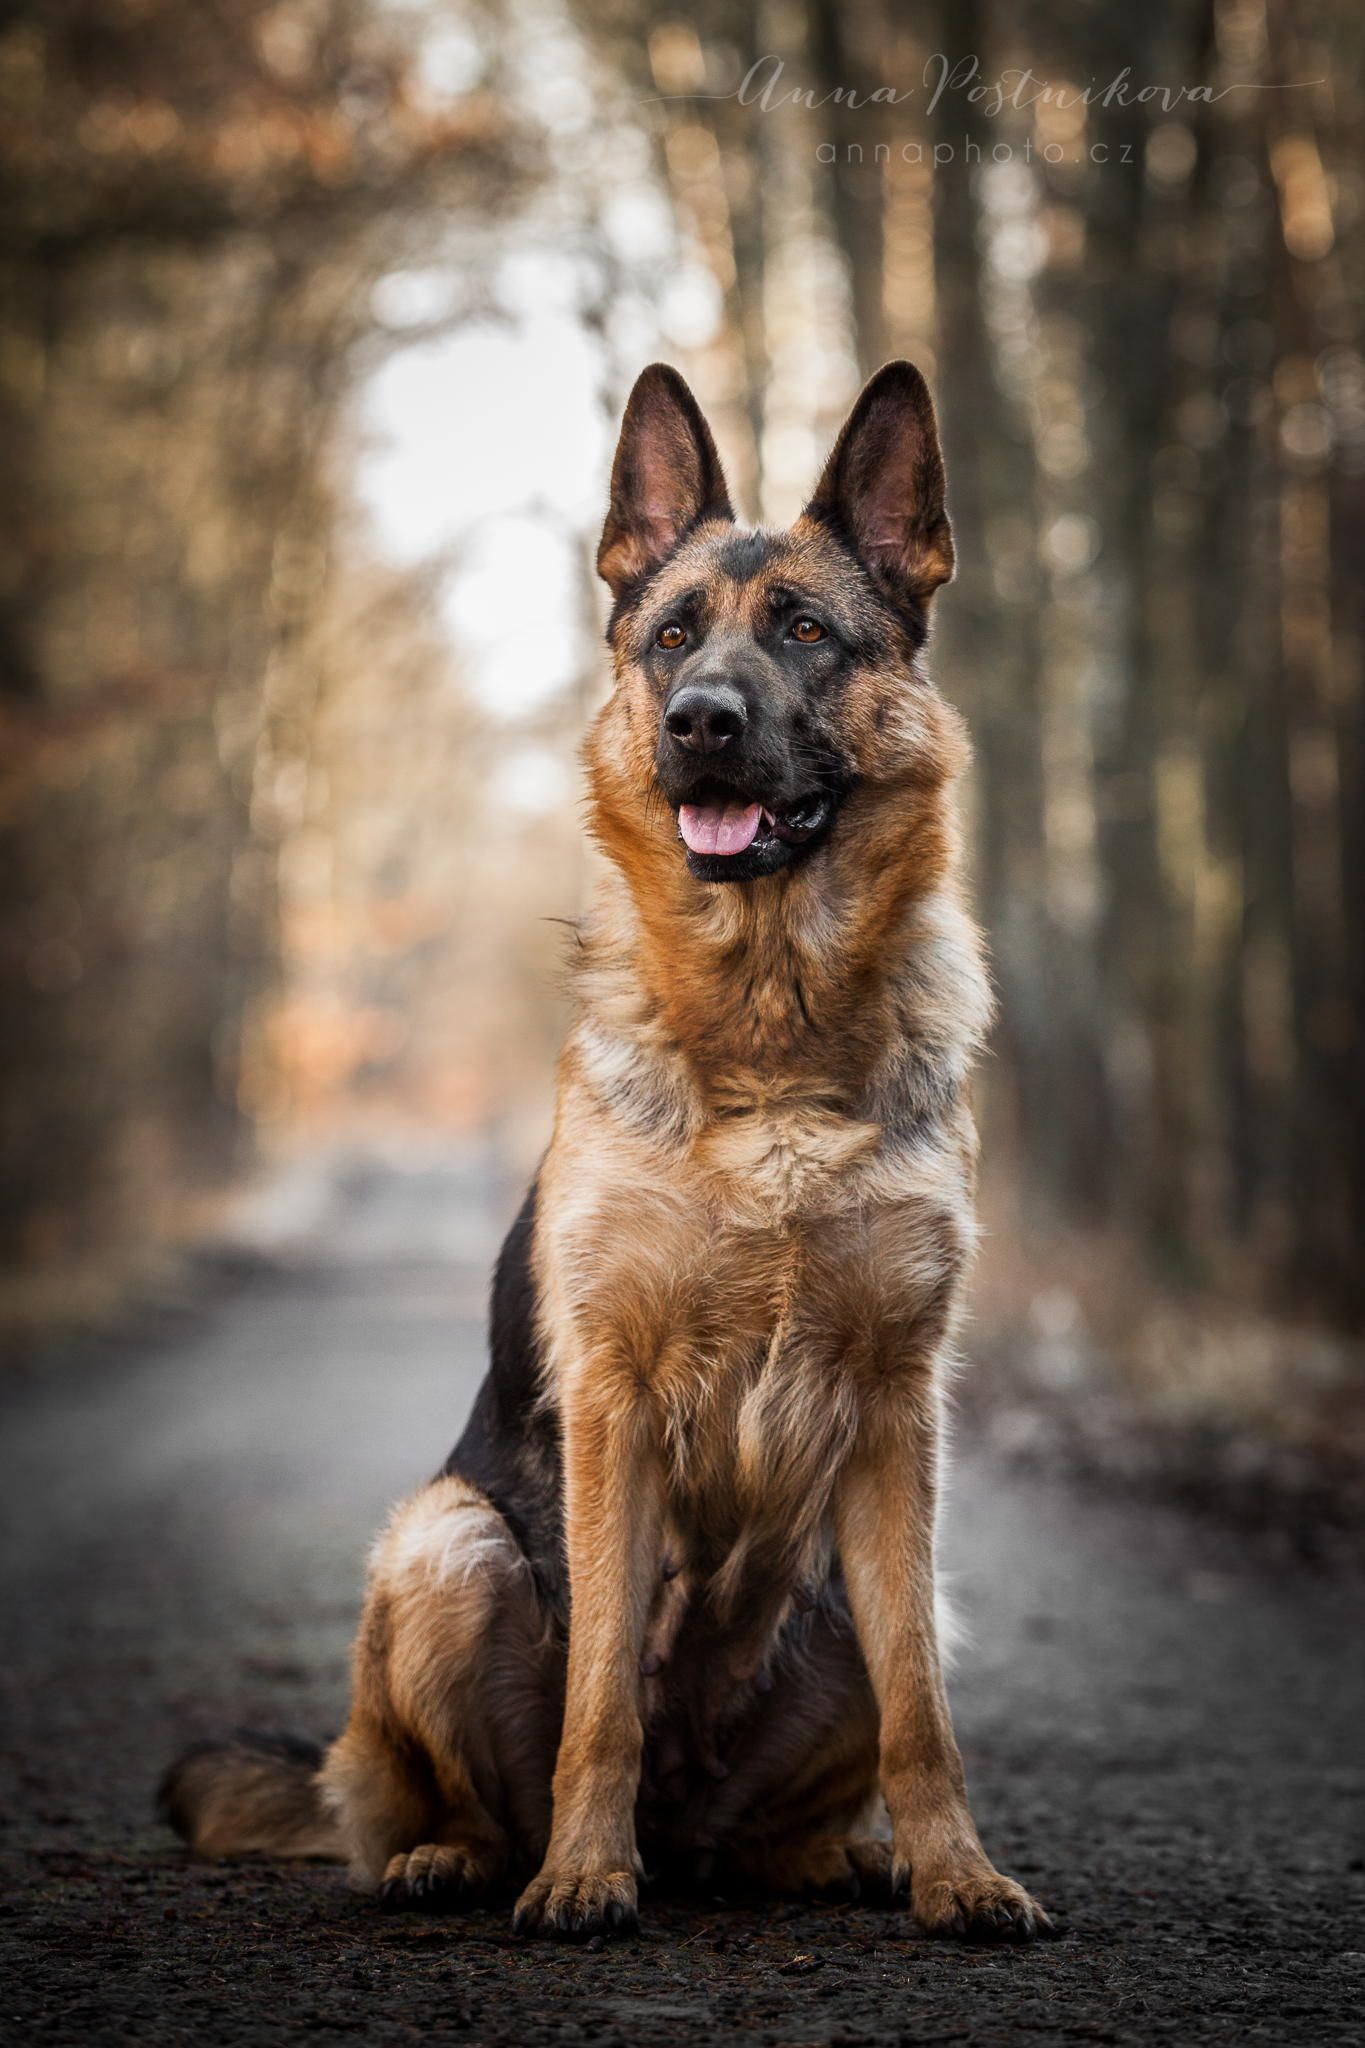 Just Gsd German Shepherd Dog In The Forest Anna Postnikova Smartest Dog Breeds Loyal Dog Breeds Dogs